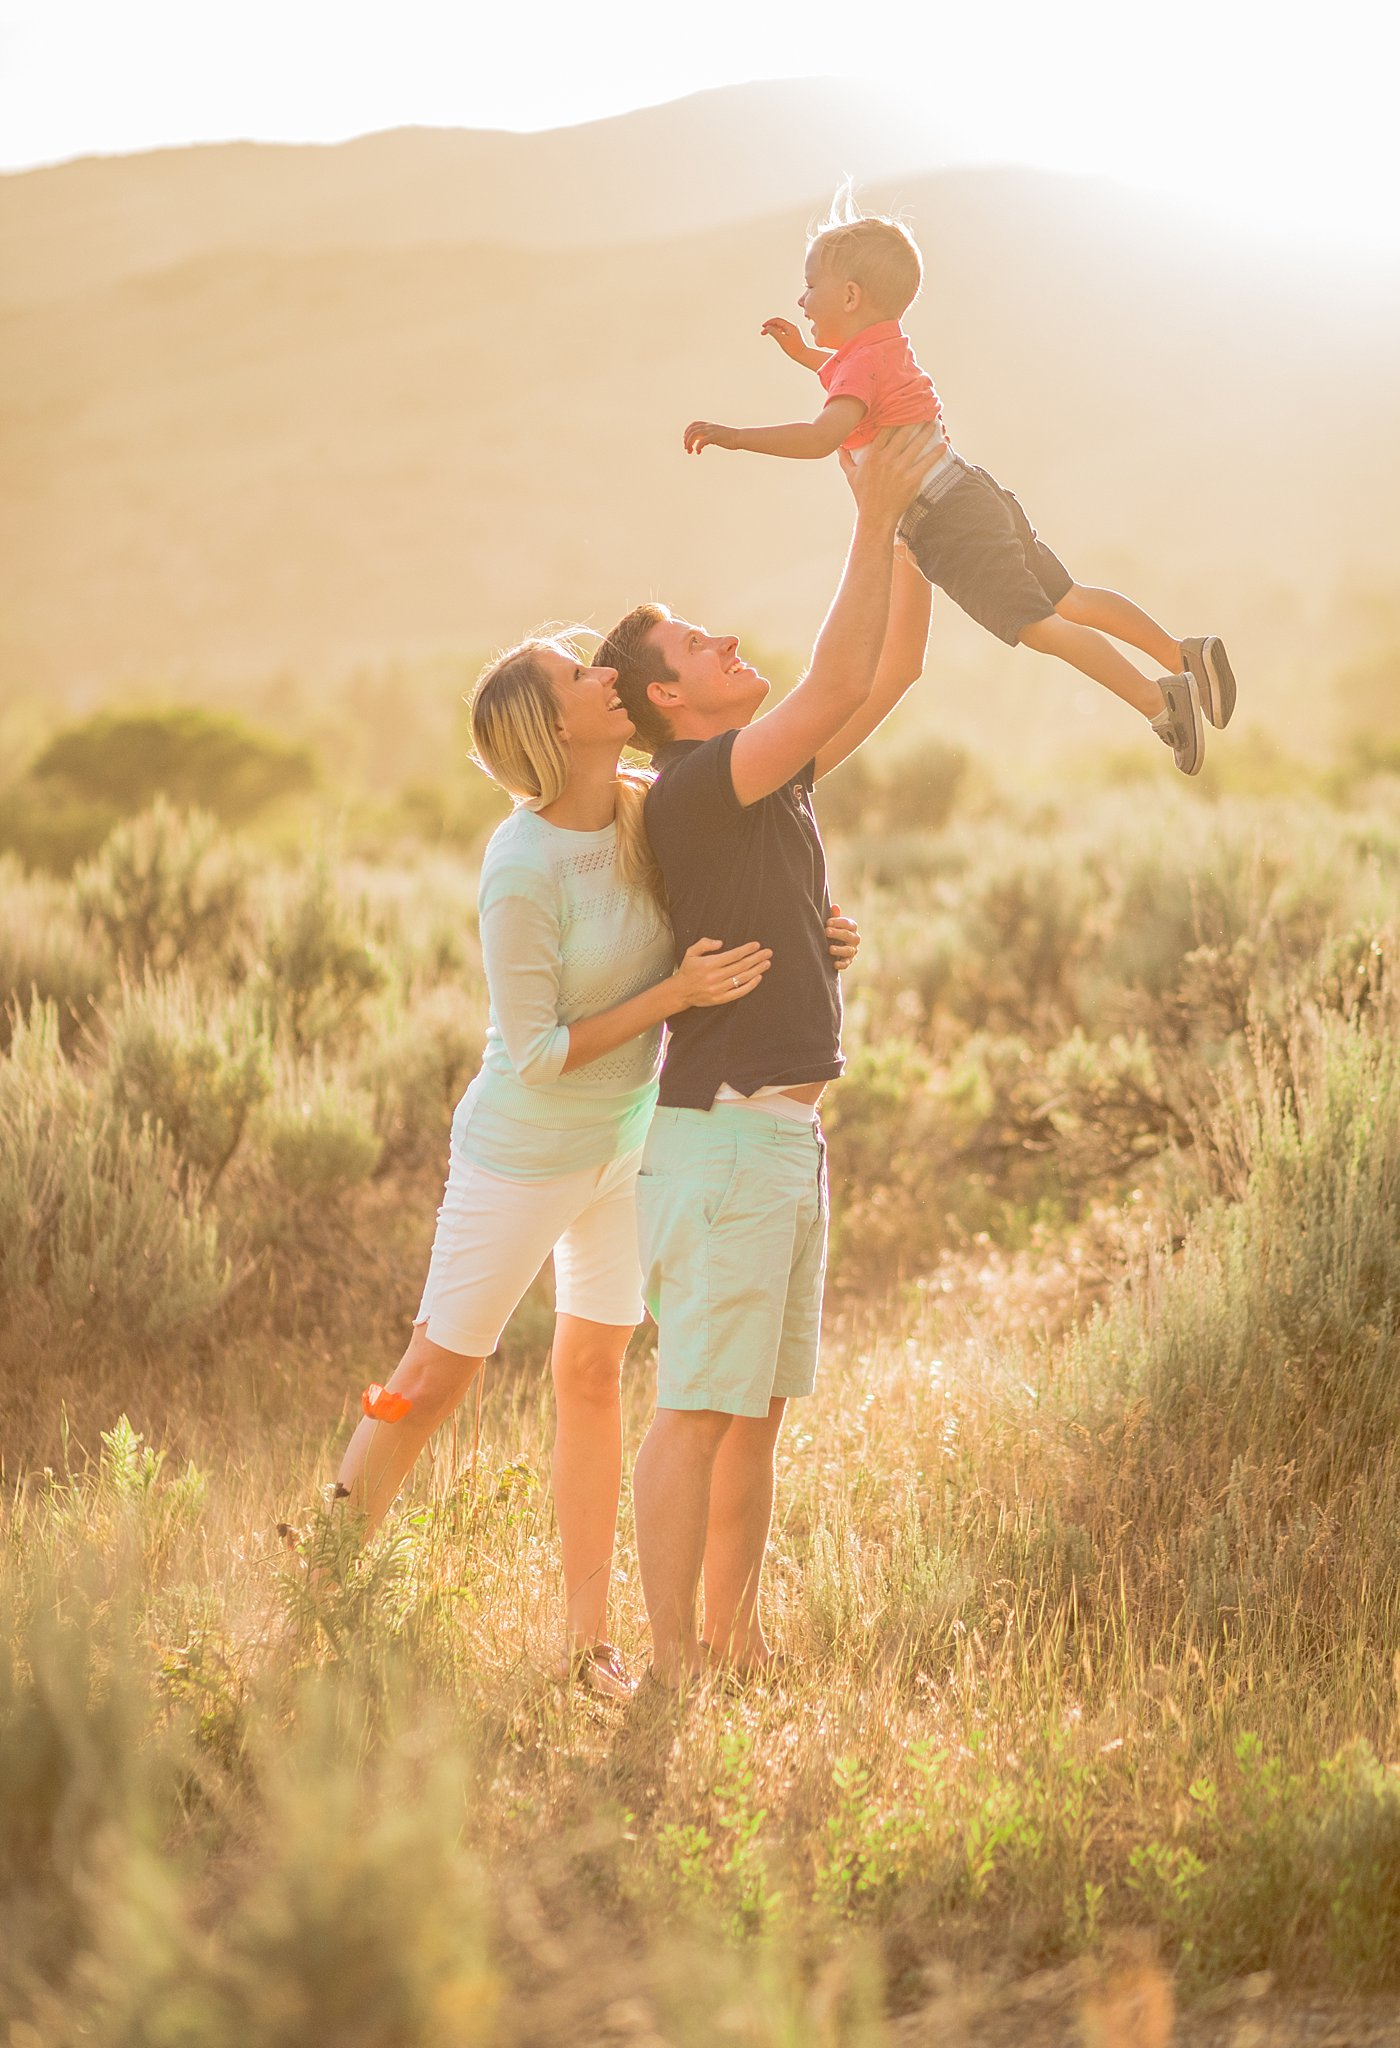 hilary gardiner photography,salt lake city photographer,utah valley,utah valley family photographer,